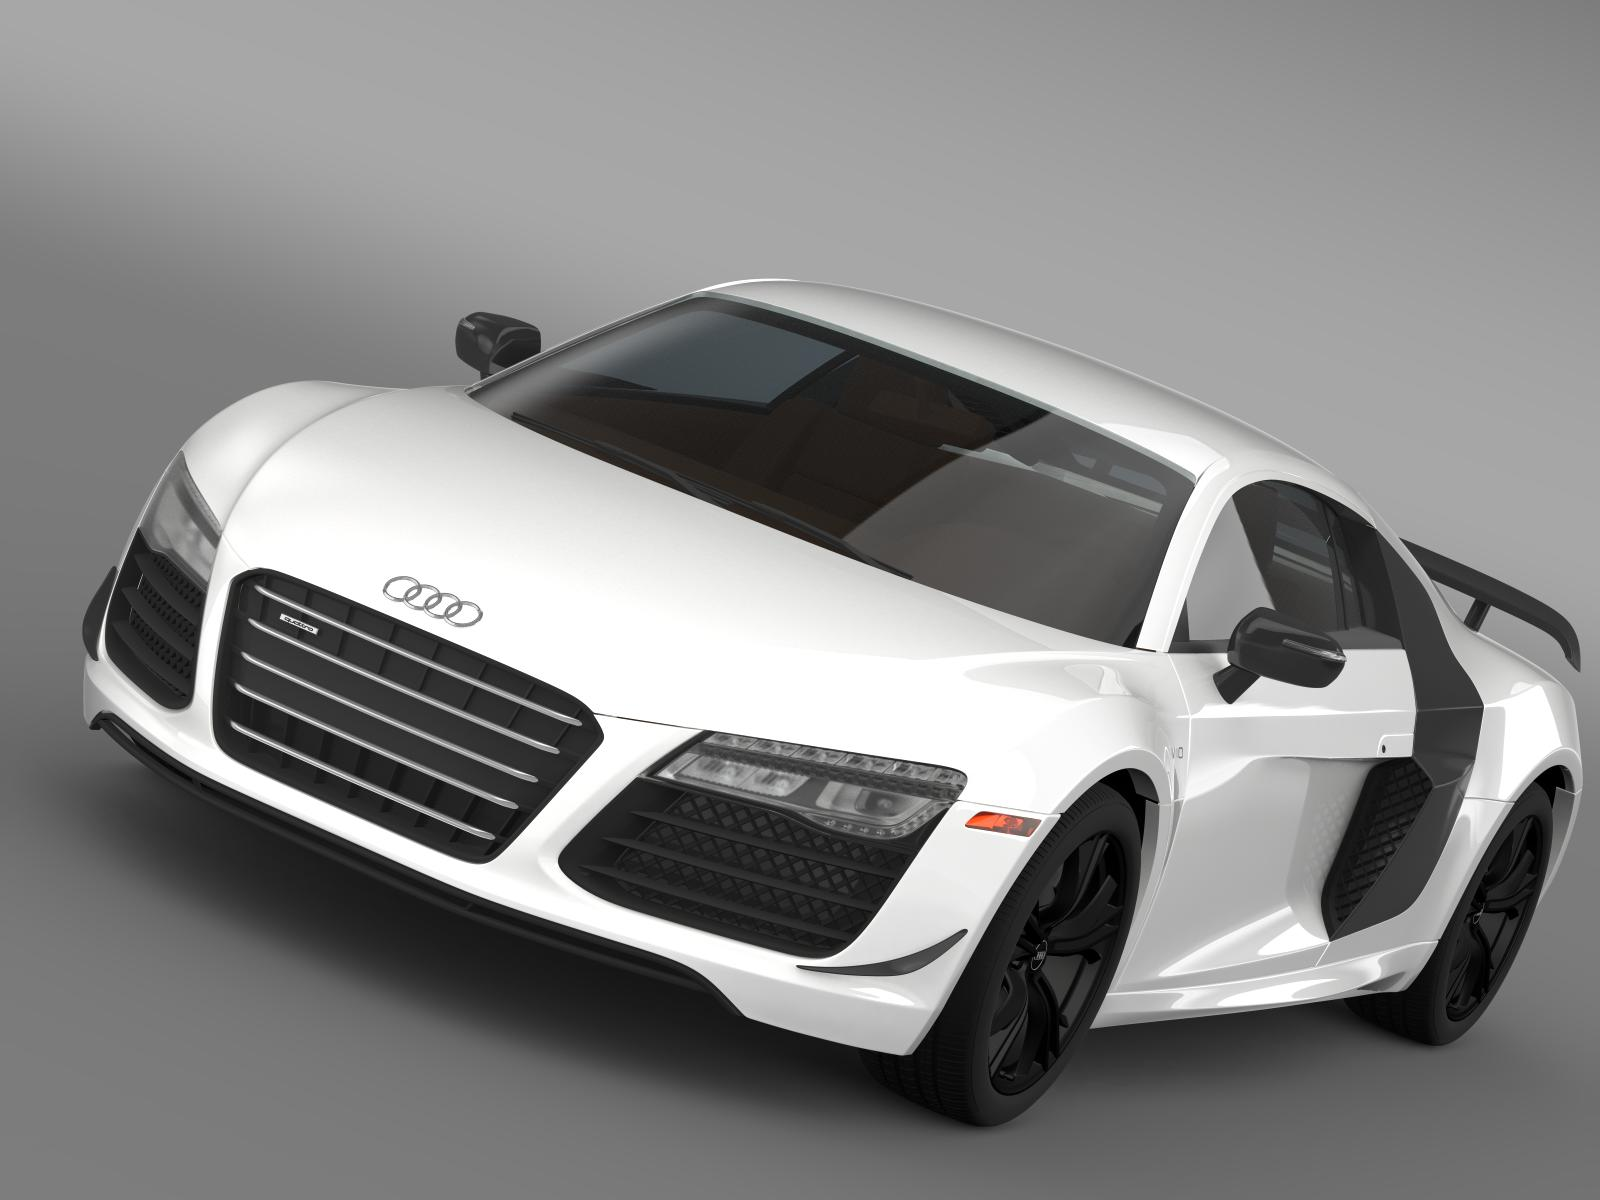 audi r8 competition 2015 3d model 3ds max fbx c4d lwo ma mb hrc xsi obj 165727